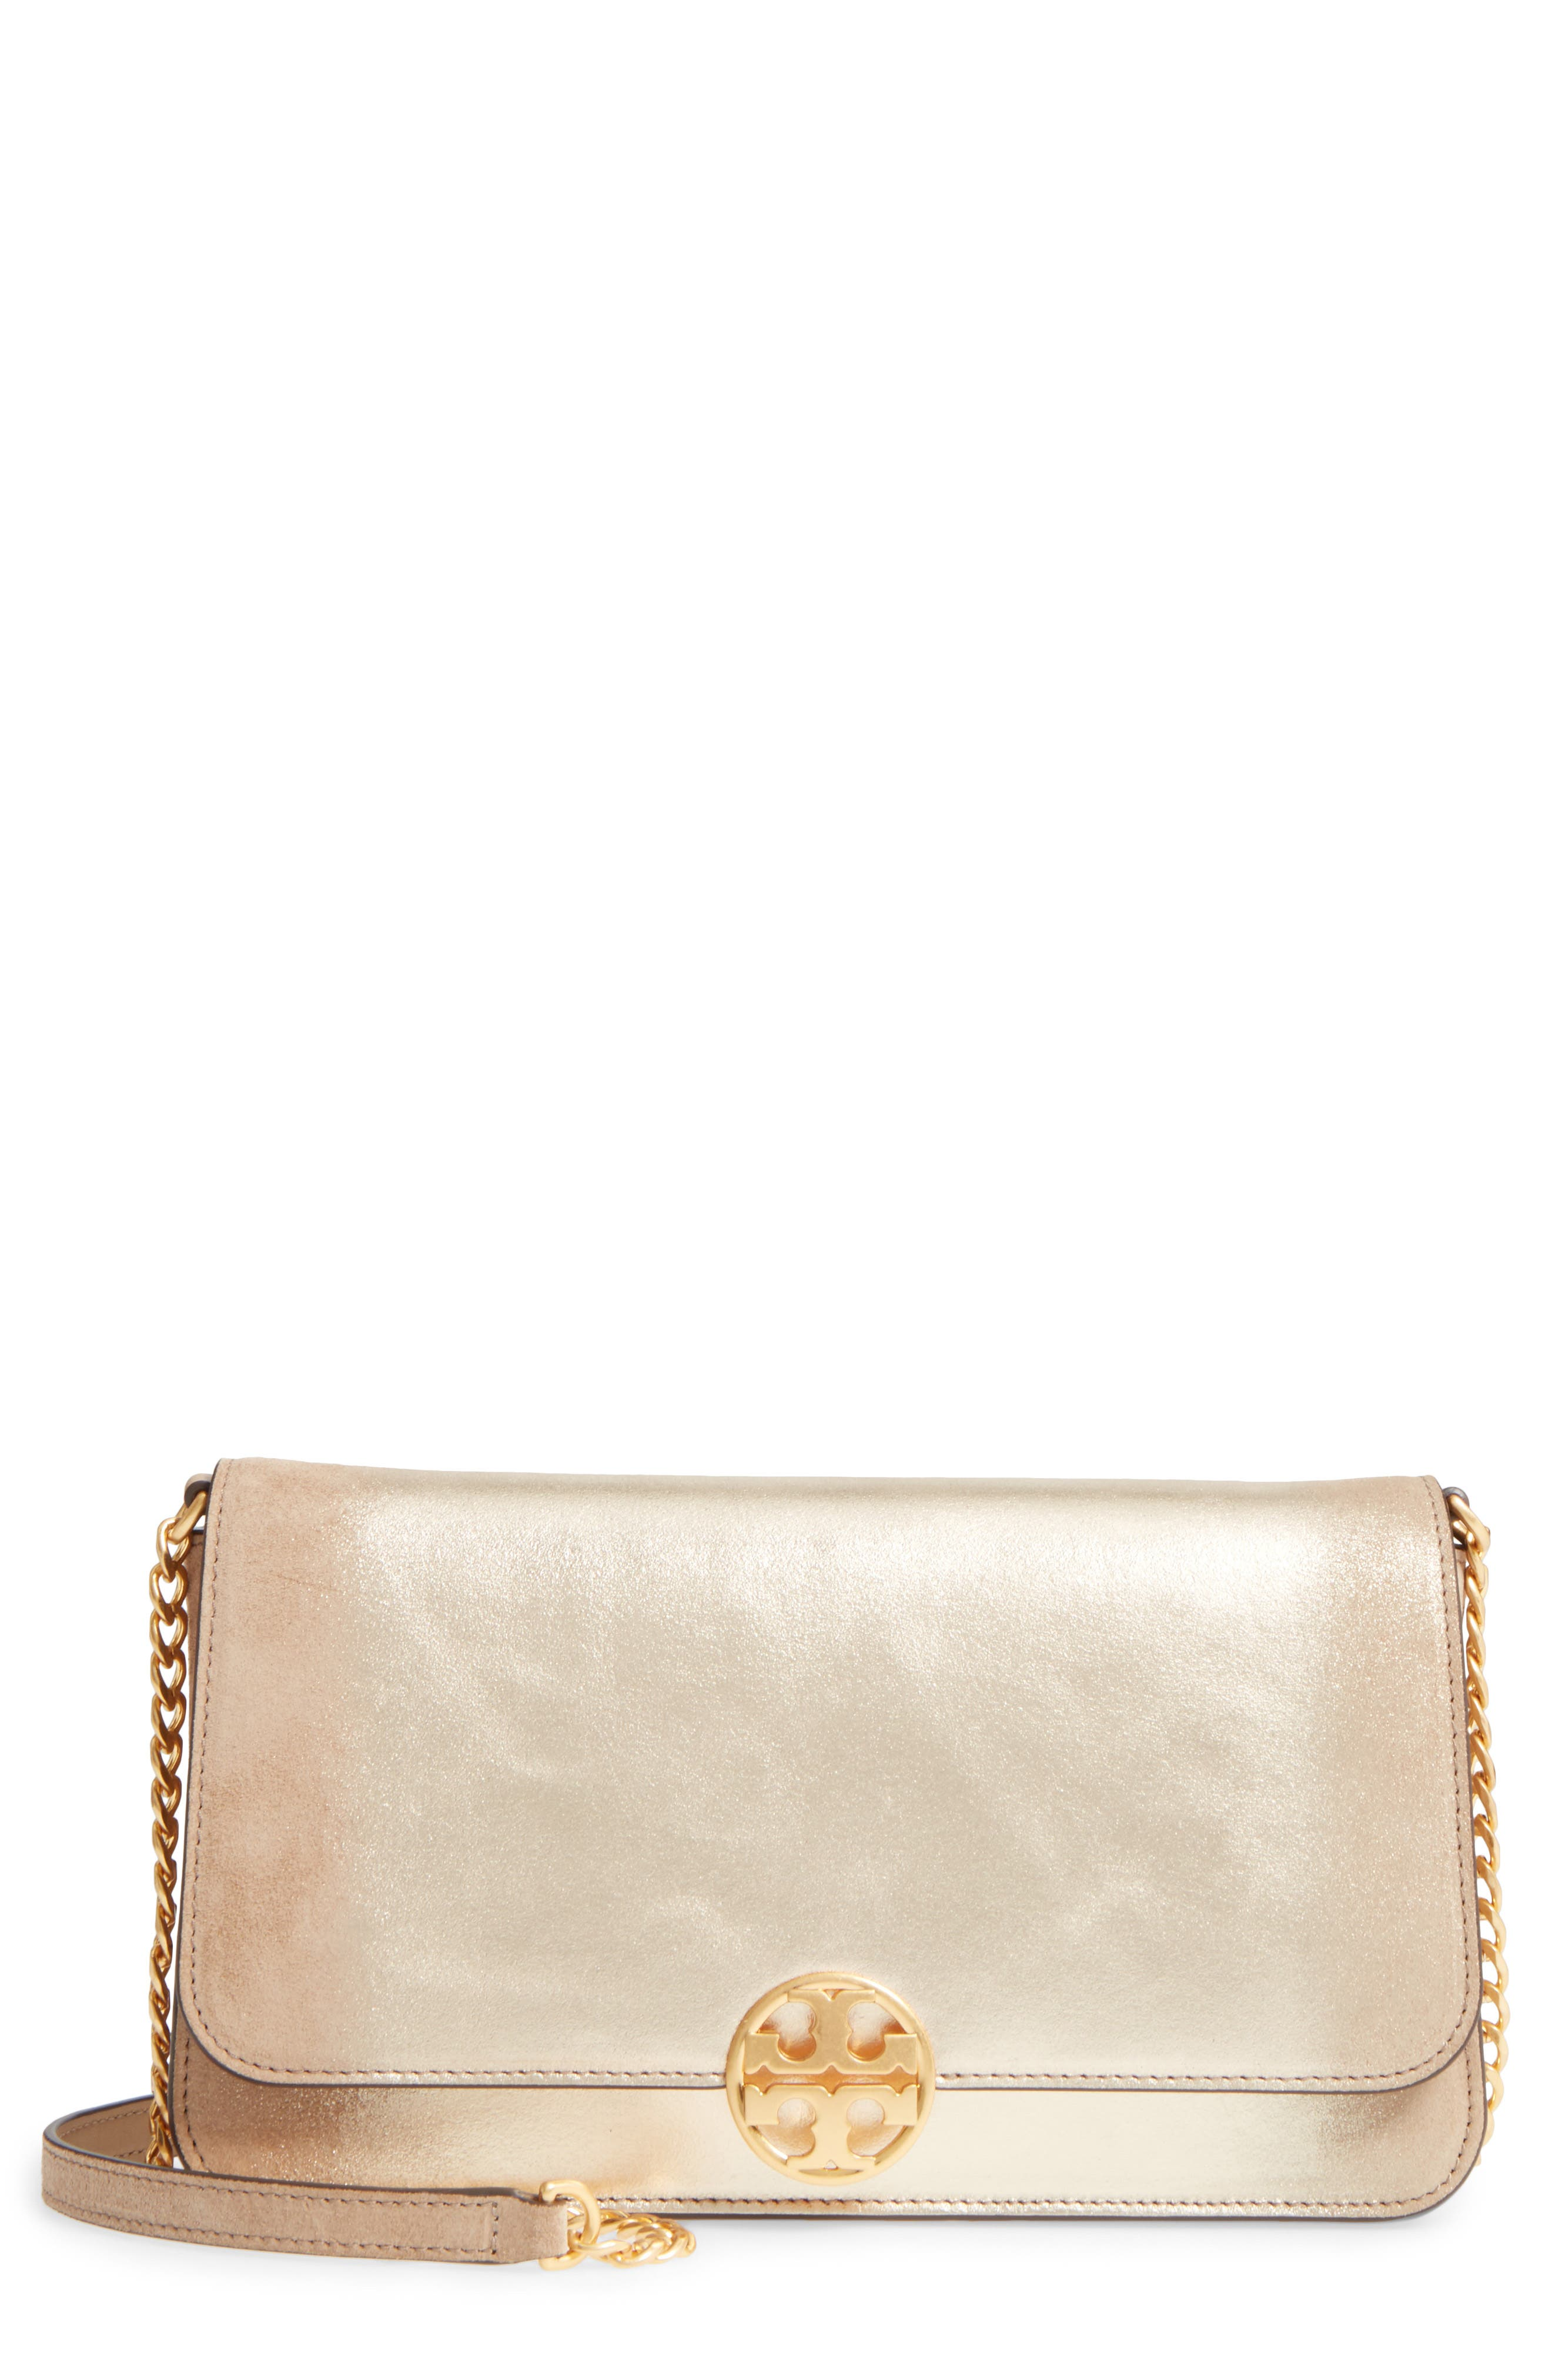 Chelsea Convertible Metallic Leather Clutch,                             Main thumbnail 1, color,                             710